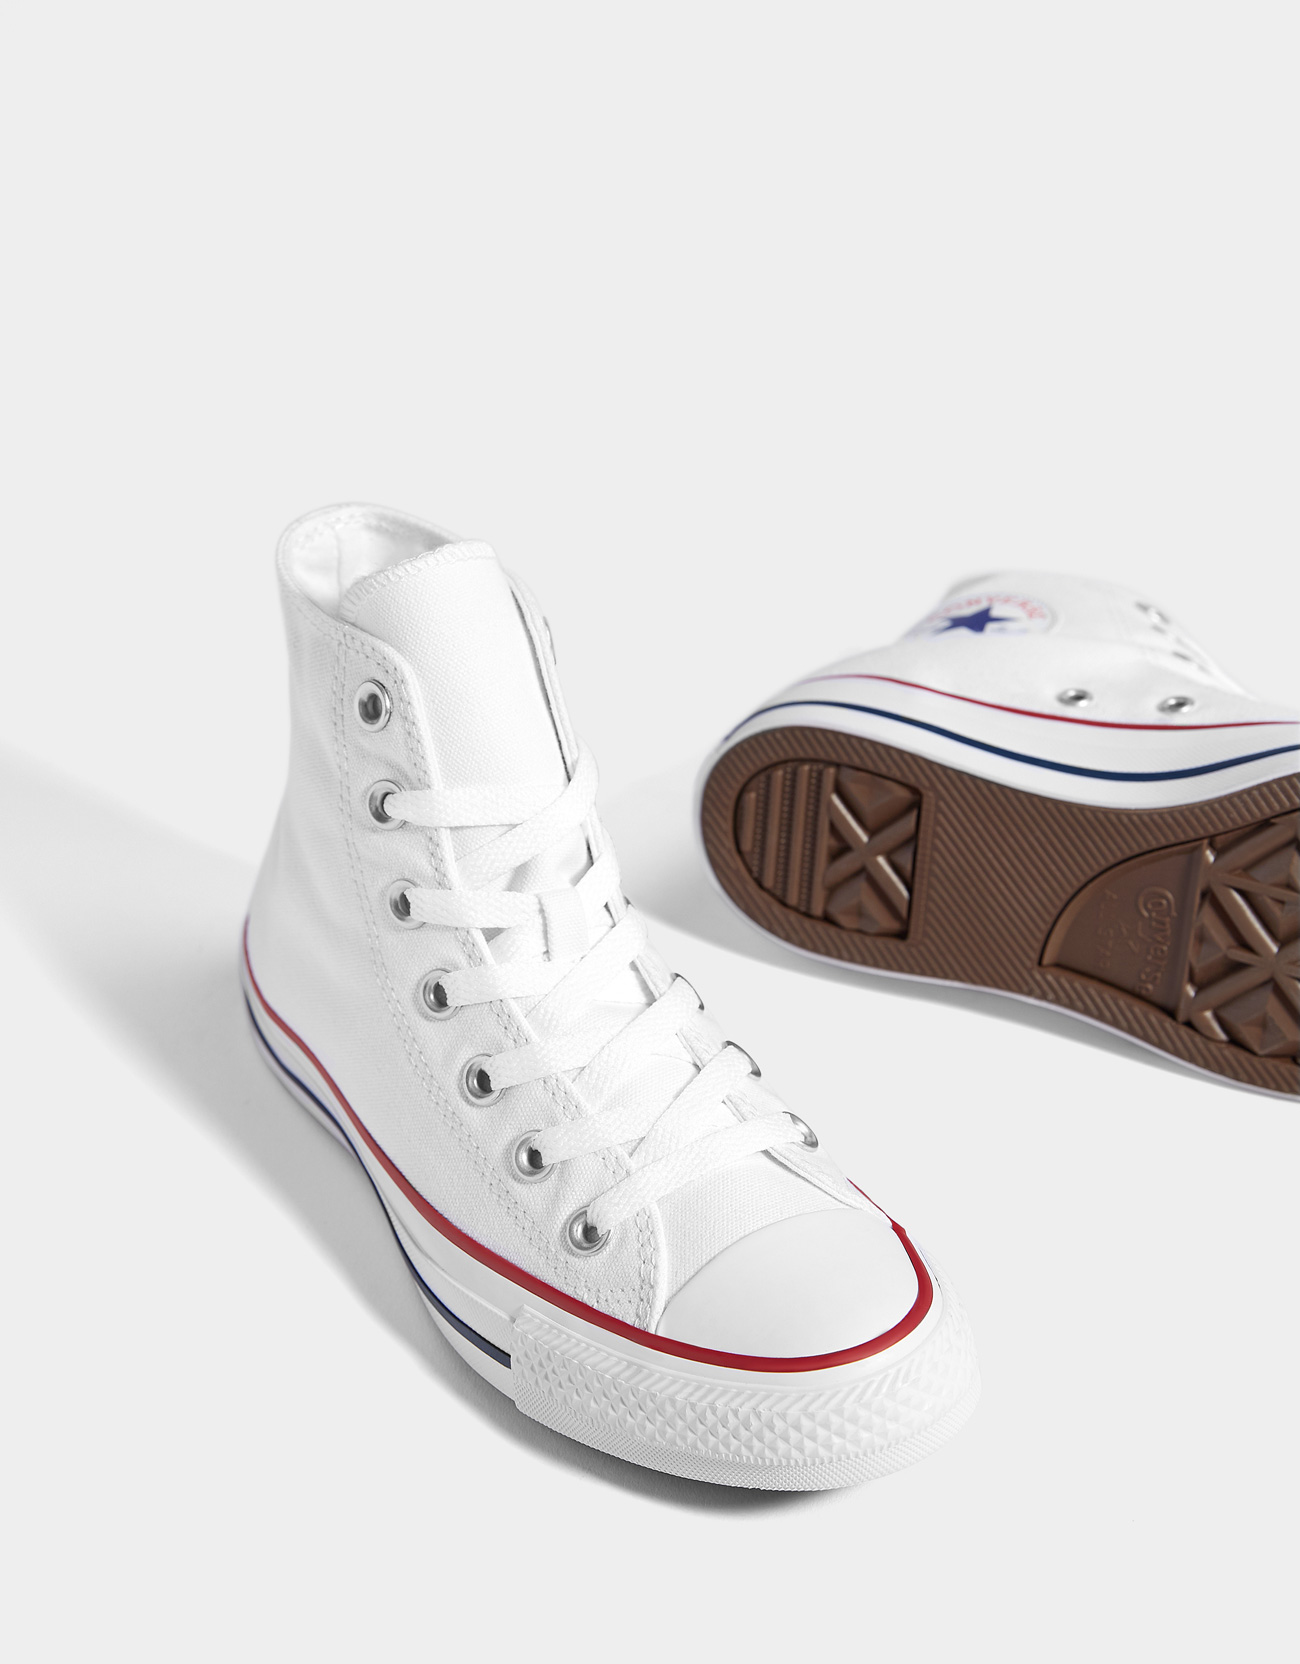 f3c3e6ba9f39ef CONVERSE ALL STAR men s high top canvas sneakers - Boots   Ankle ...